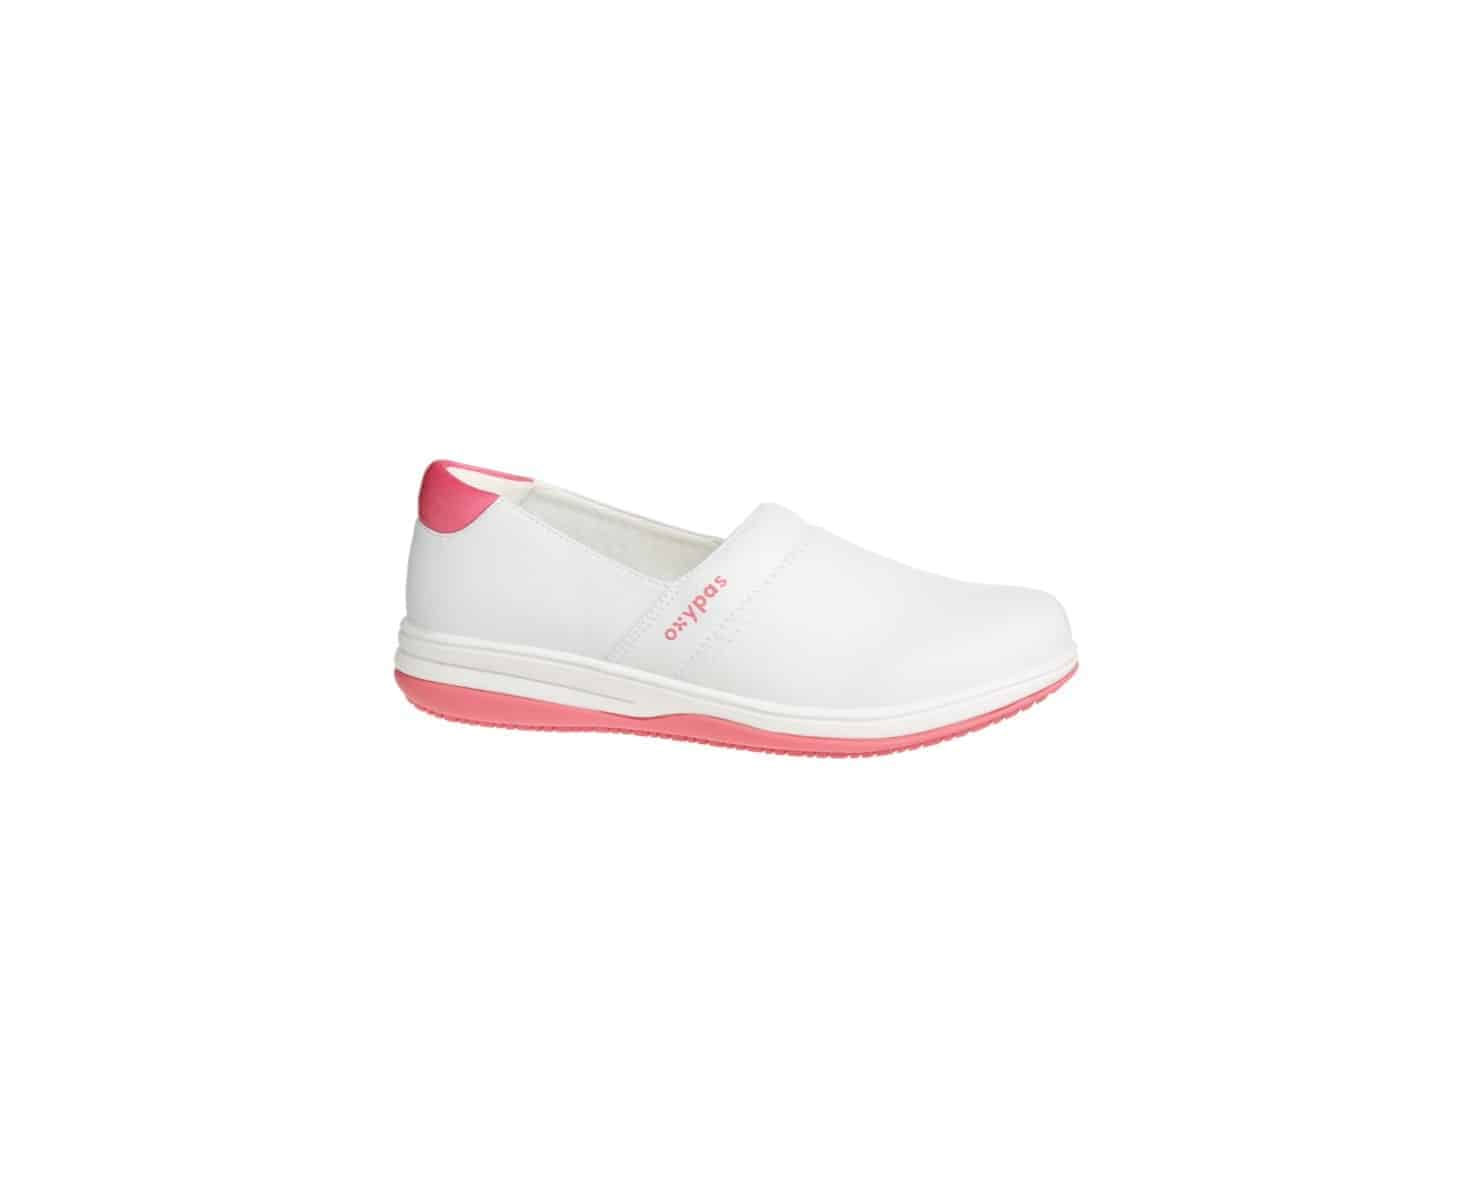 Oxypas Medilogic 'Suzy', Slip-on, Anti-slip, Anti-static